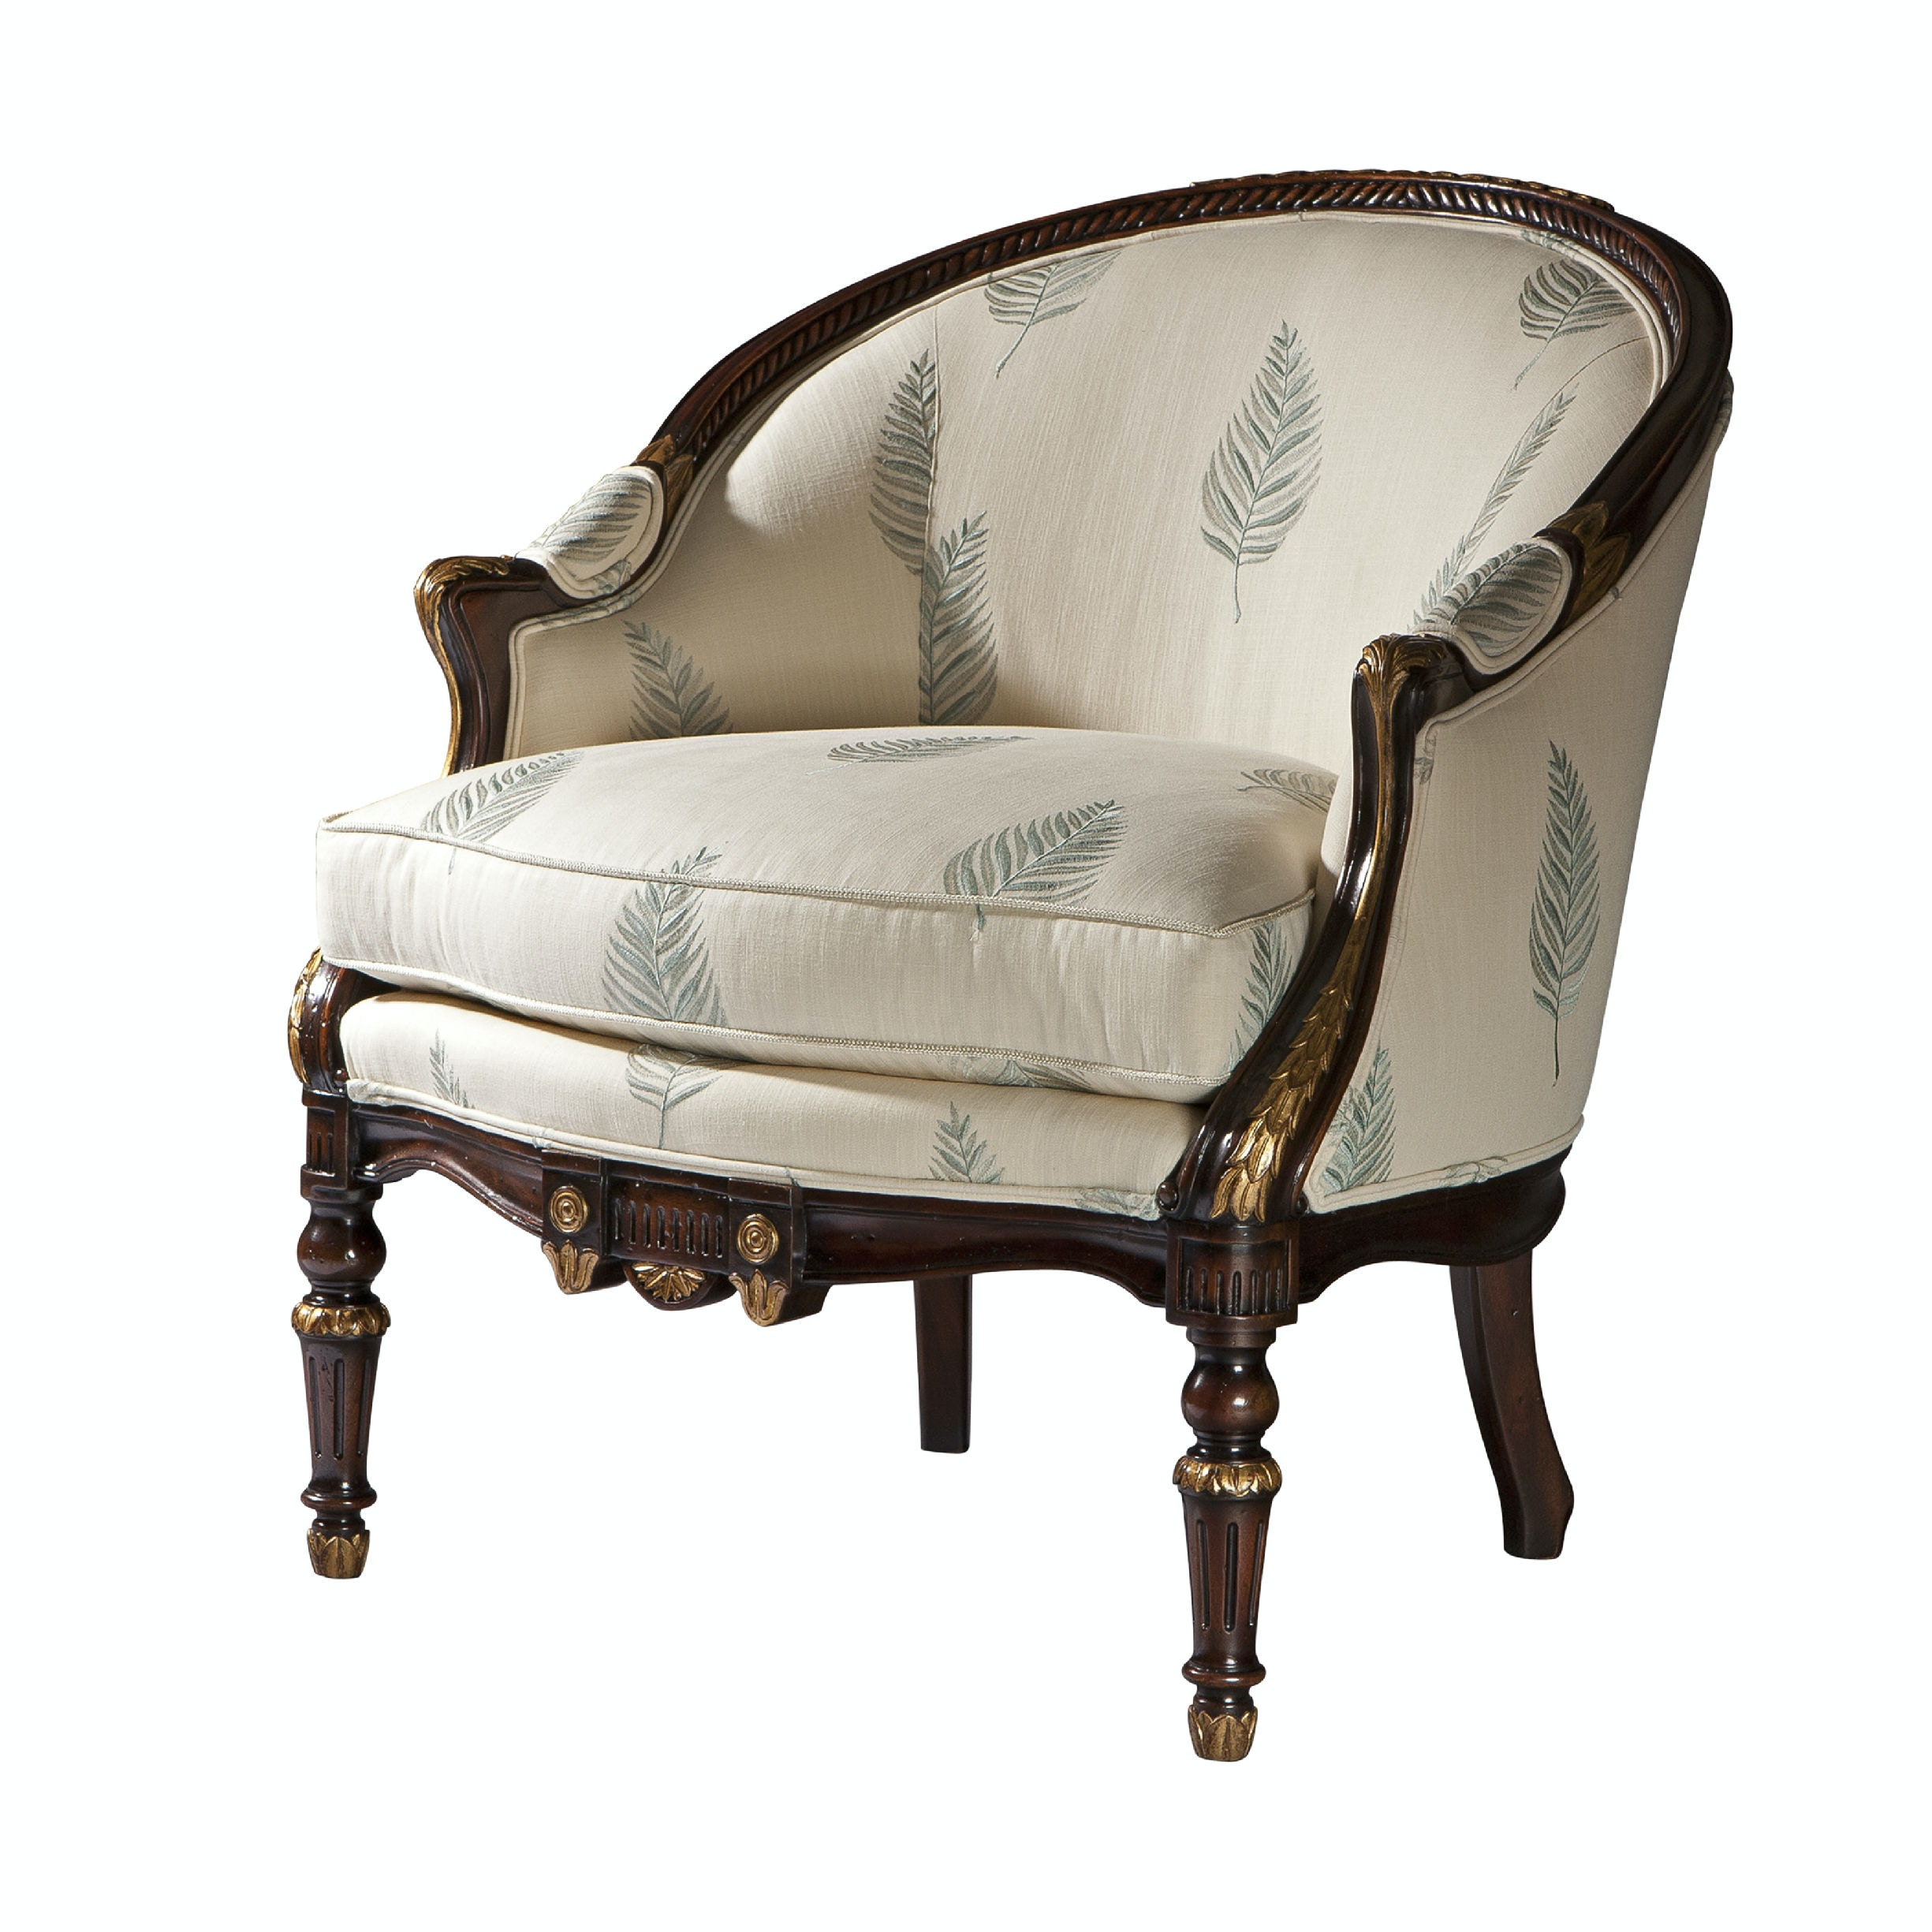 chairs for living room india decorating a small with fireplace theodore alexander the silk bedroom chair a214 5 at gorman s